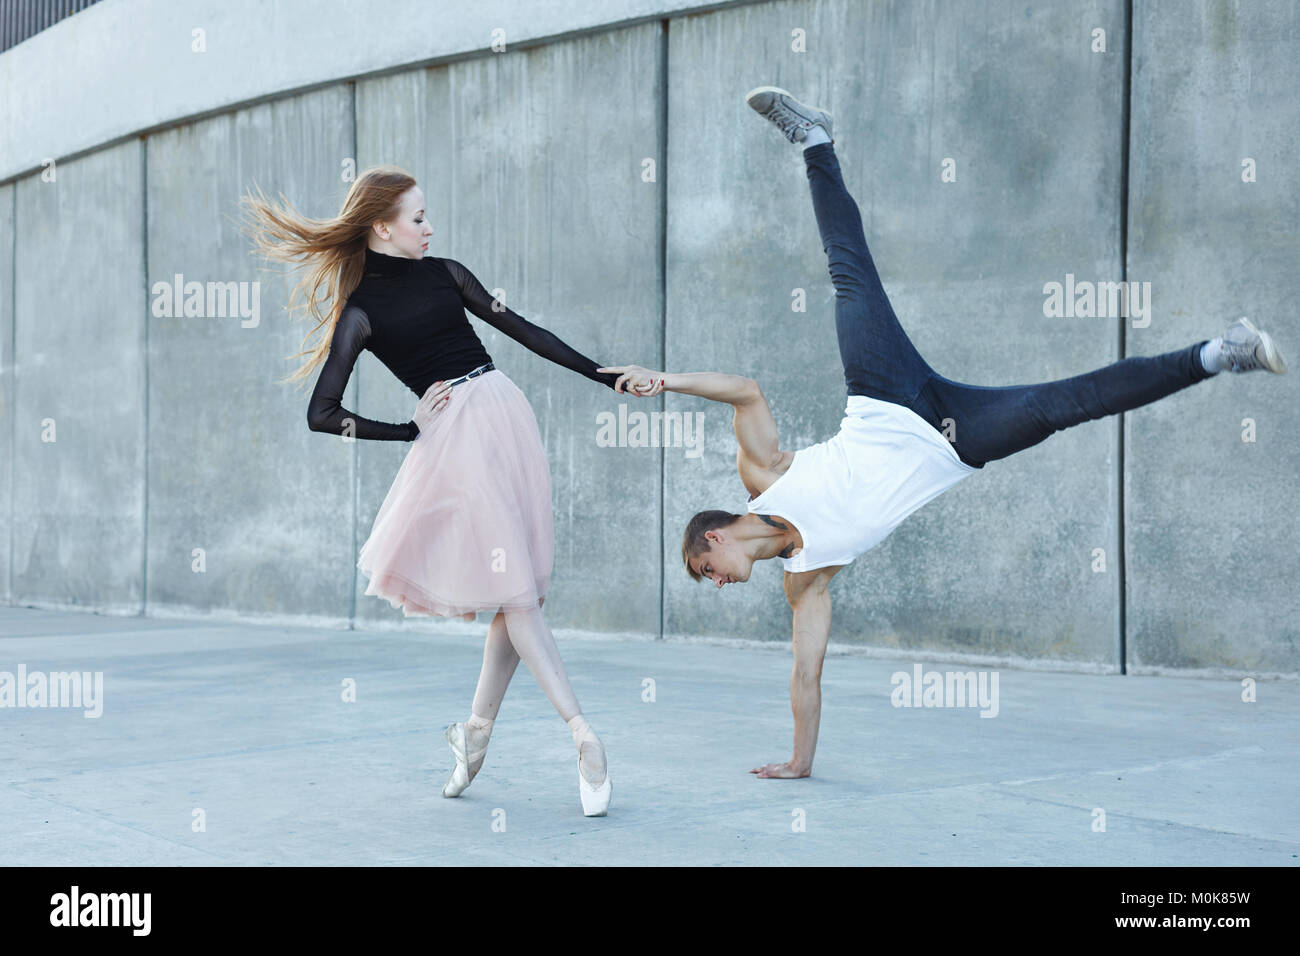 A young couple in love passionately dances on a city street. Dancer and sportsman Parkour. Balance and stunts in - Stock Image